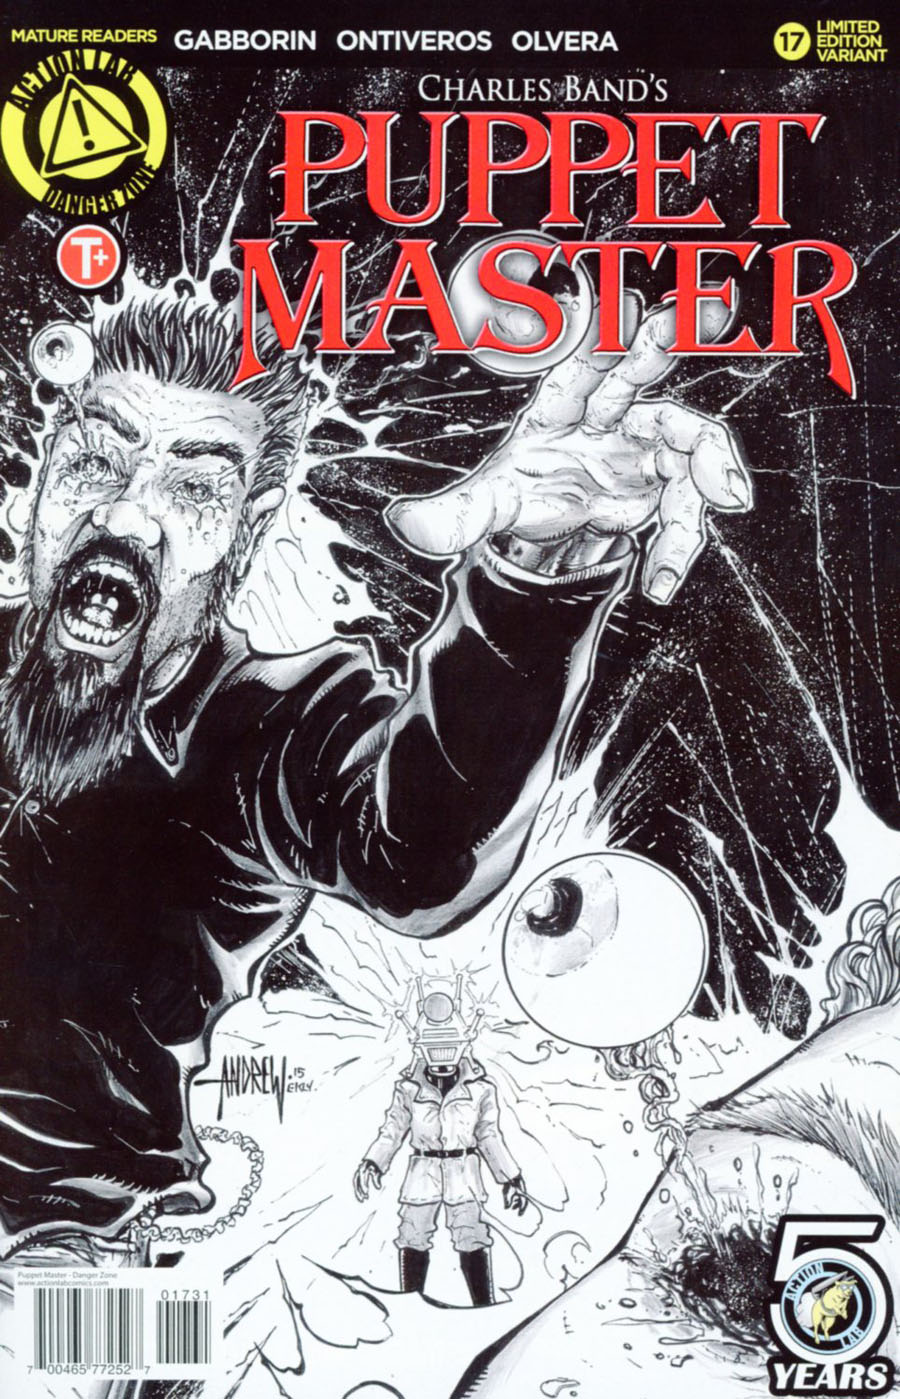 Puppet Master #17 Cover C Variant Andrew Mangum Kill Sketch Cover